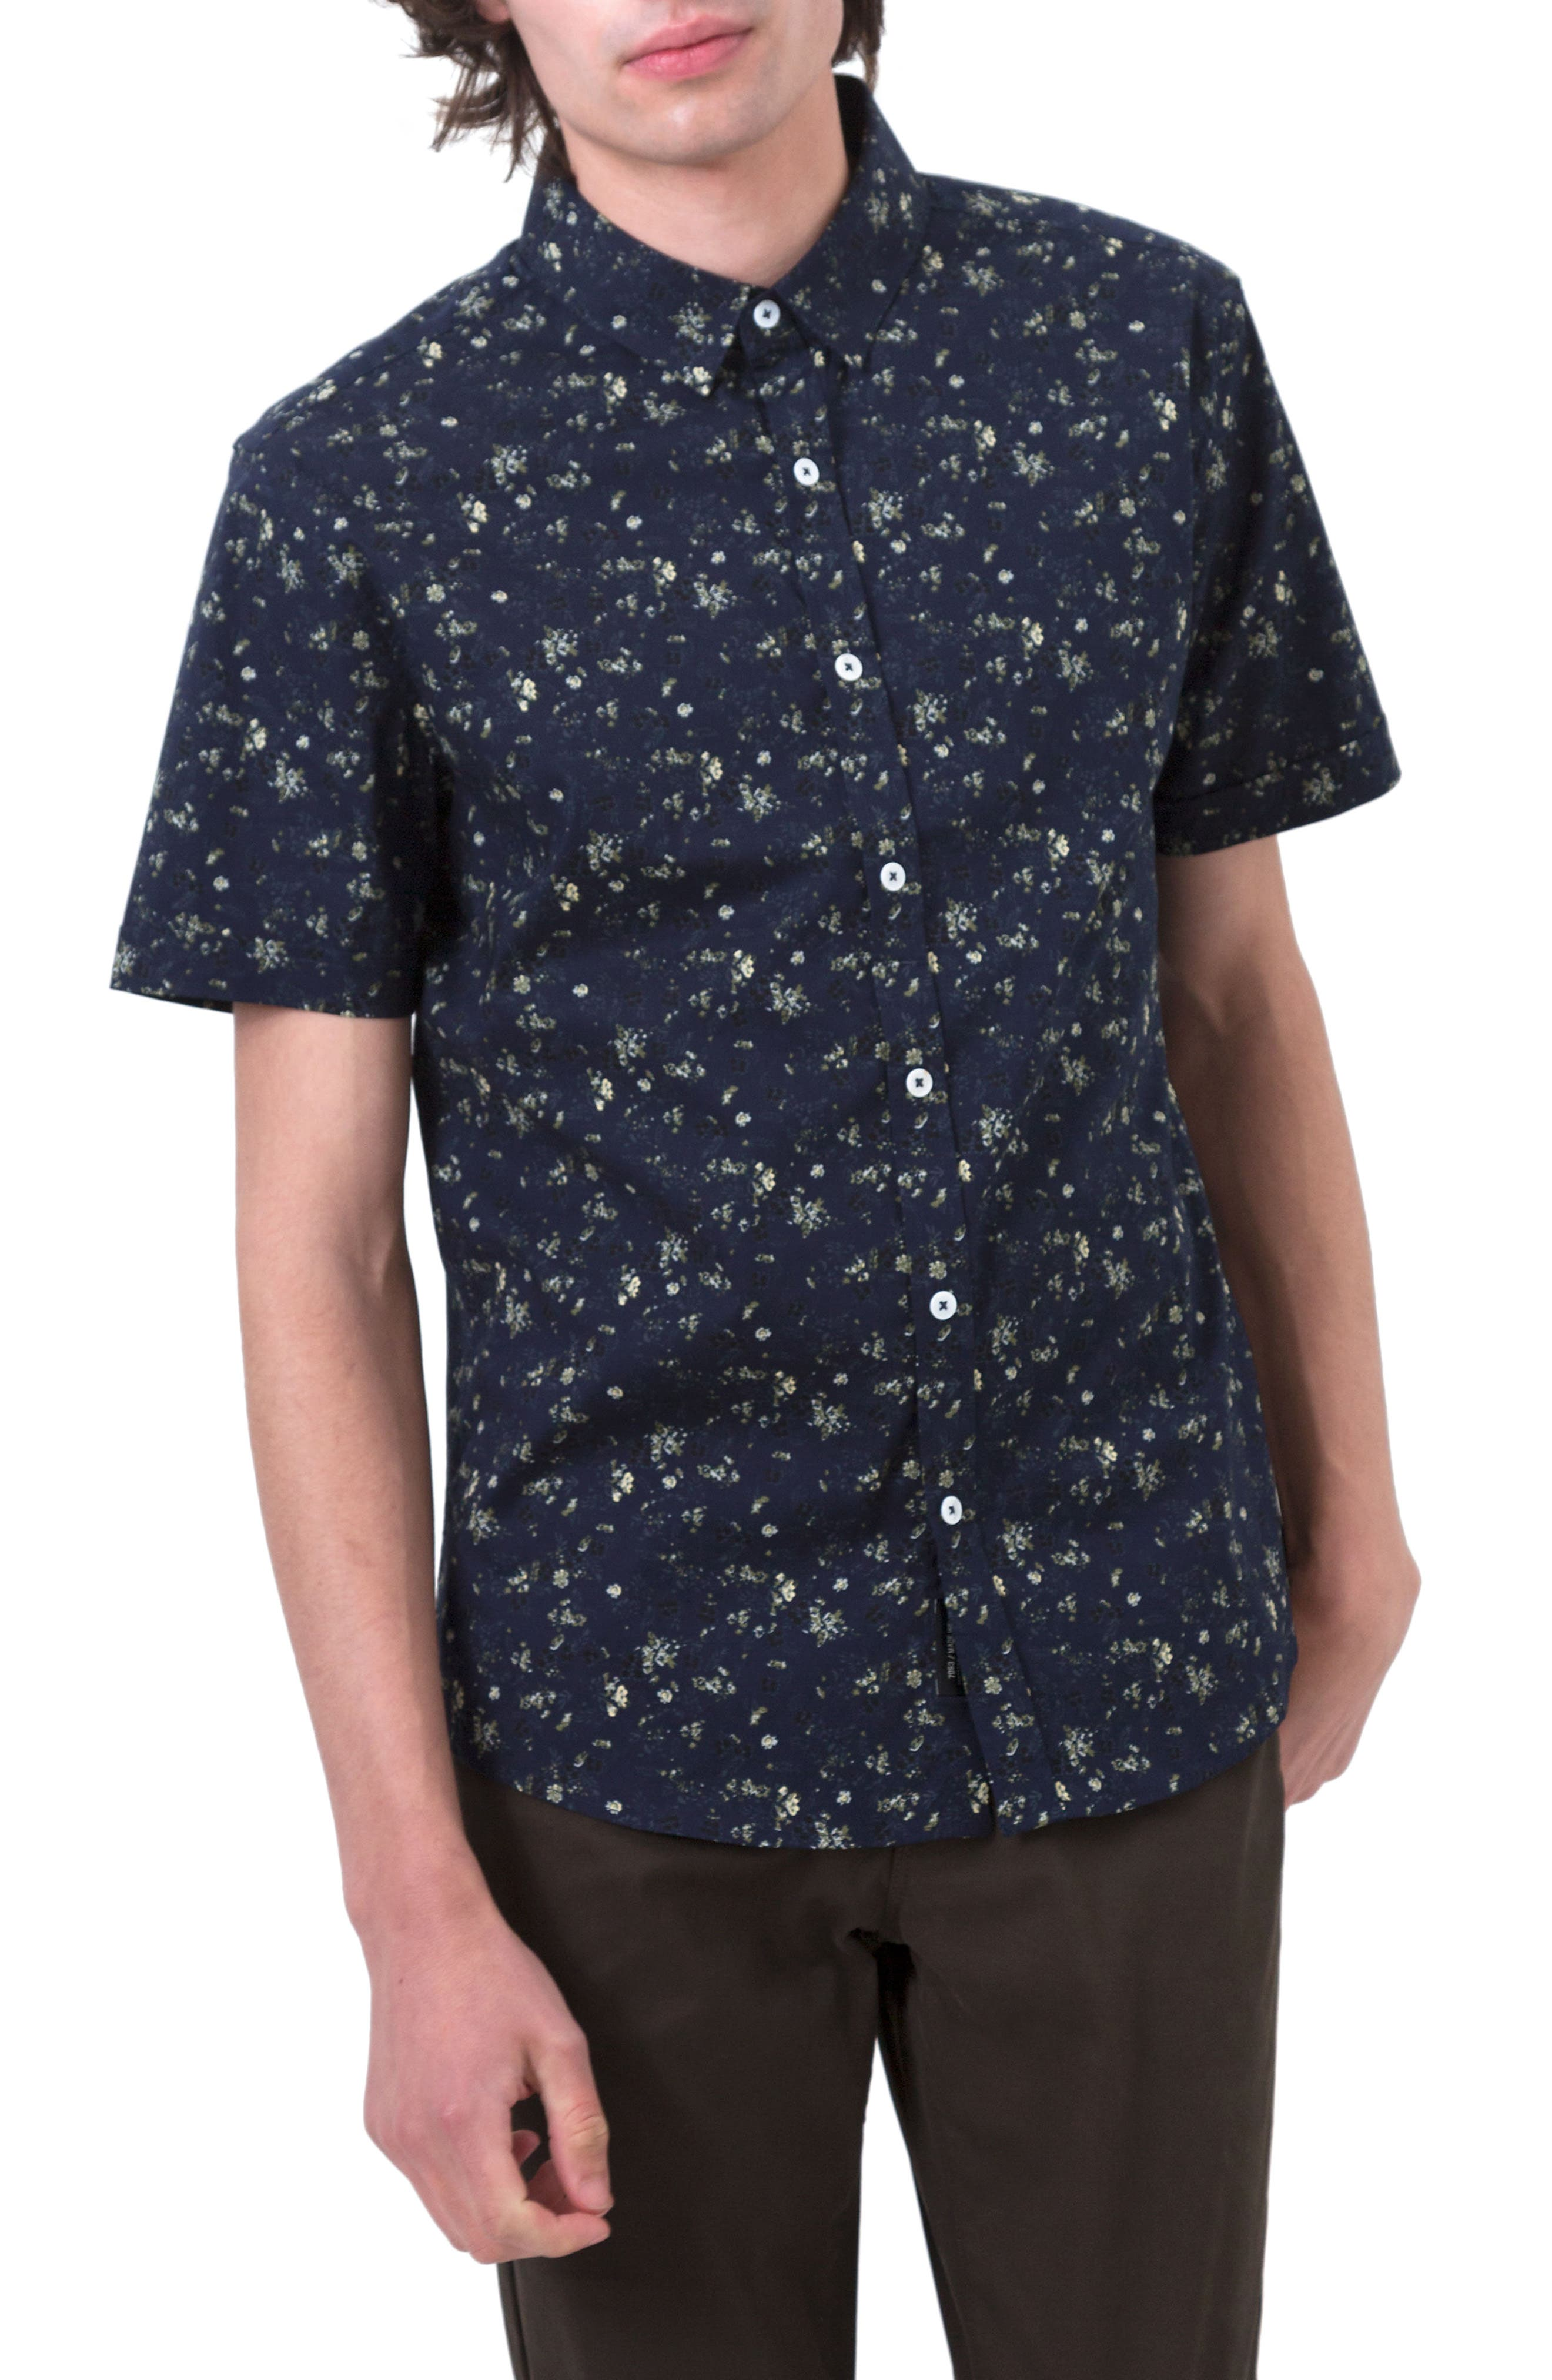 Jungle Youth Trim Fit Short Sleeve Sport Shirt,                             Main thumbnail 1, color,                             Navy